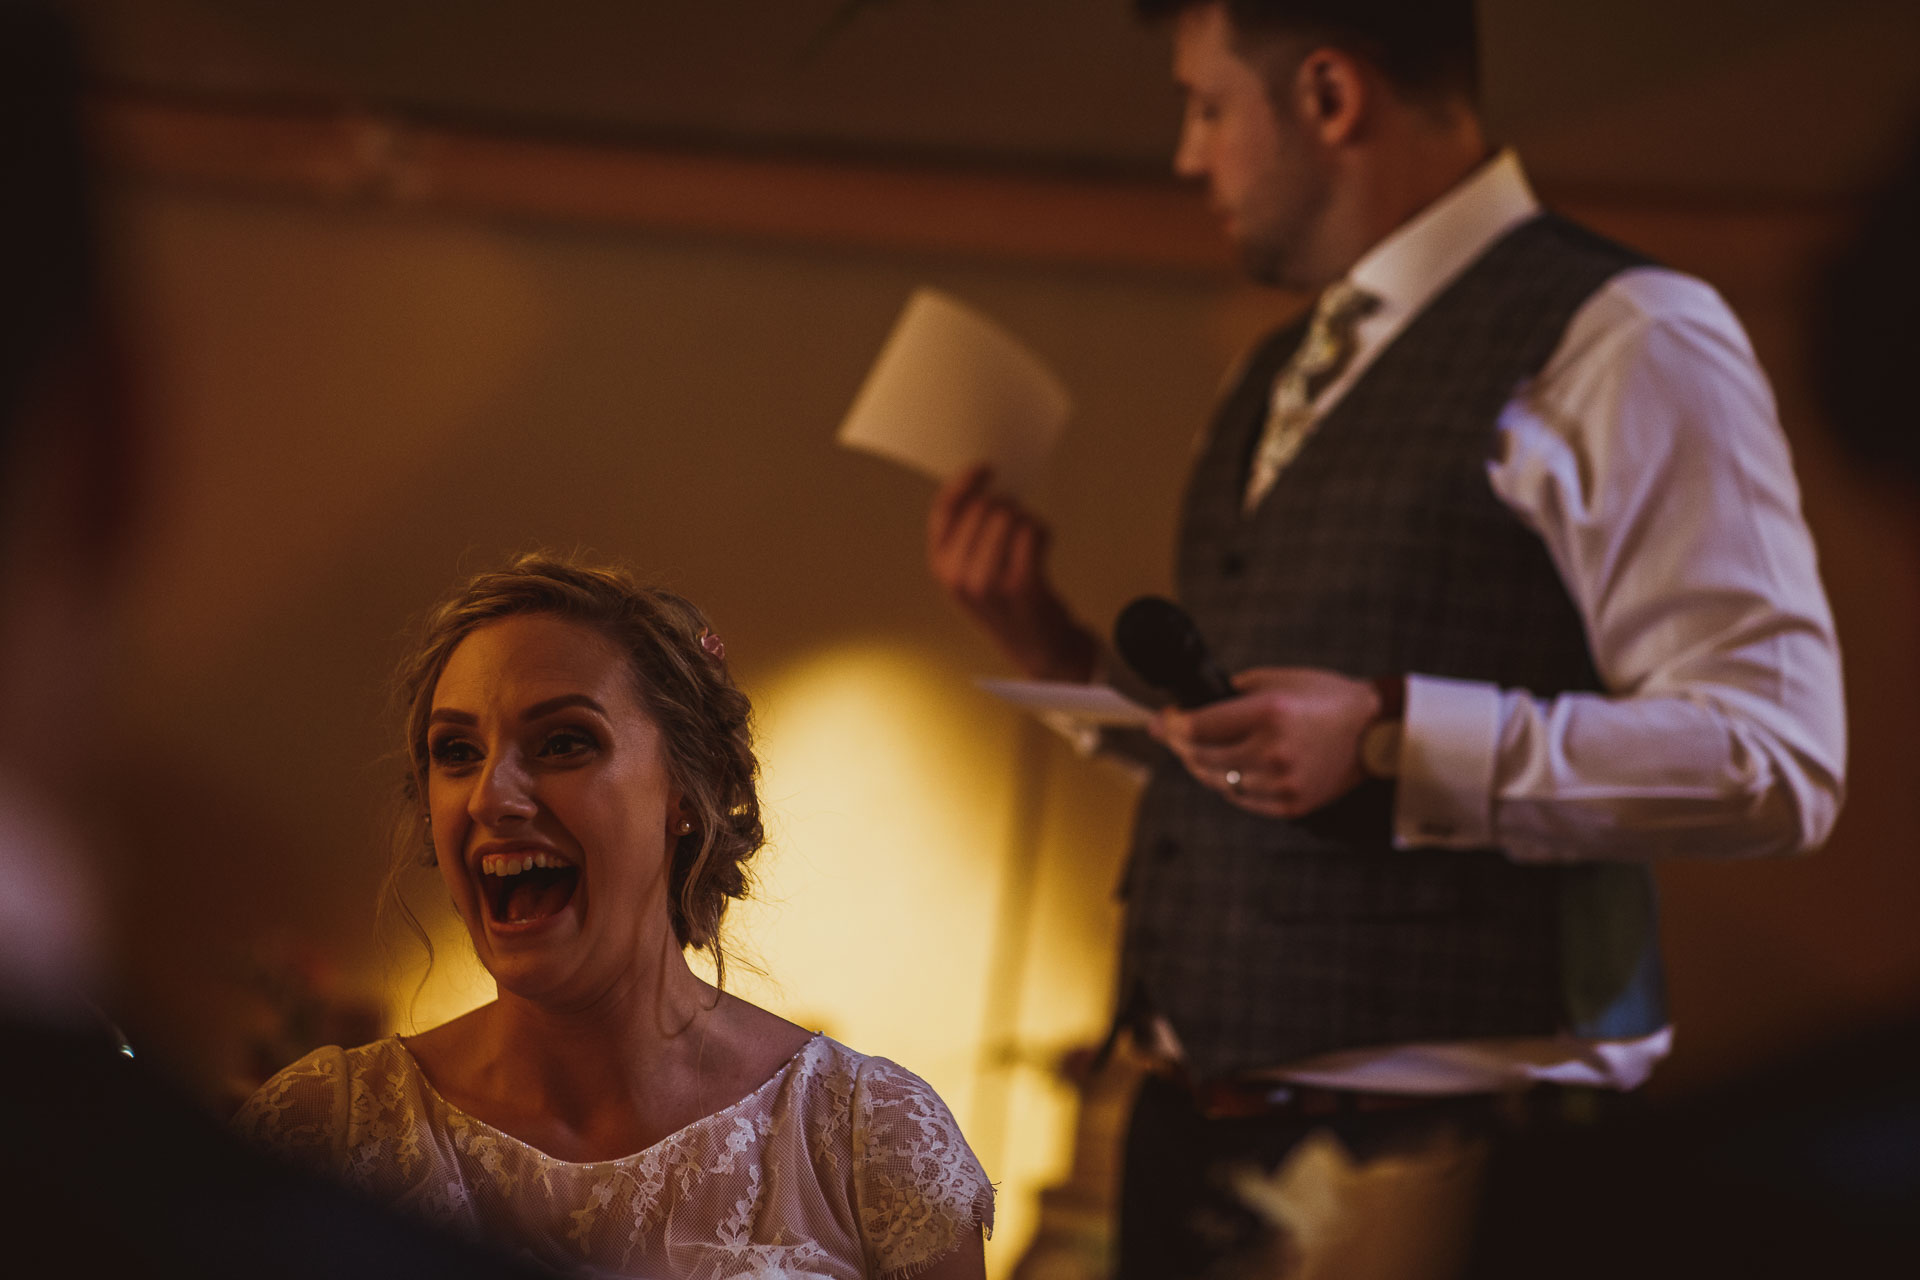 the_barn_scarborough_wedding_photographer-99.jpg